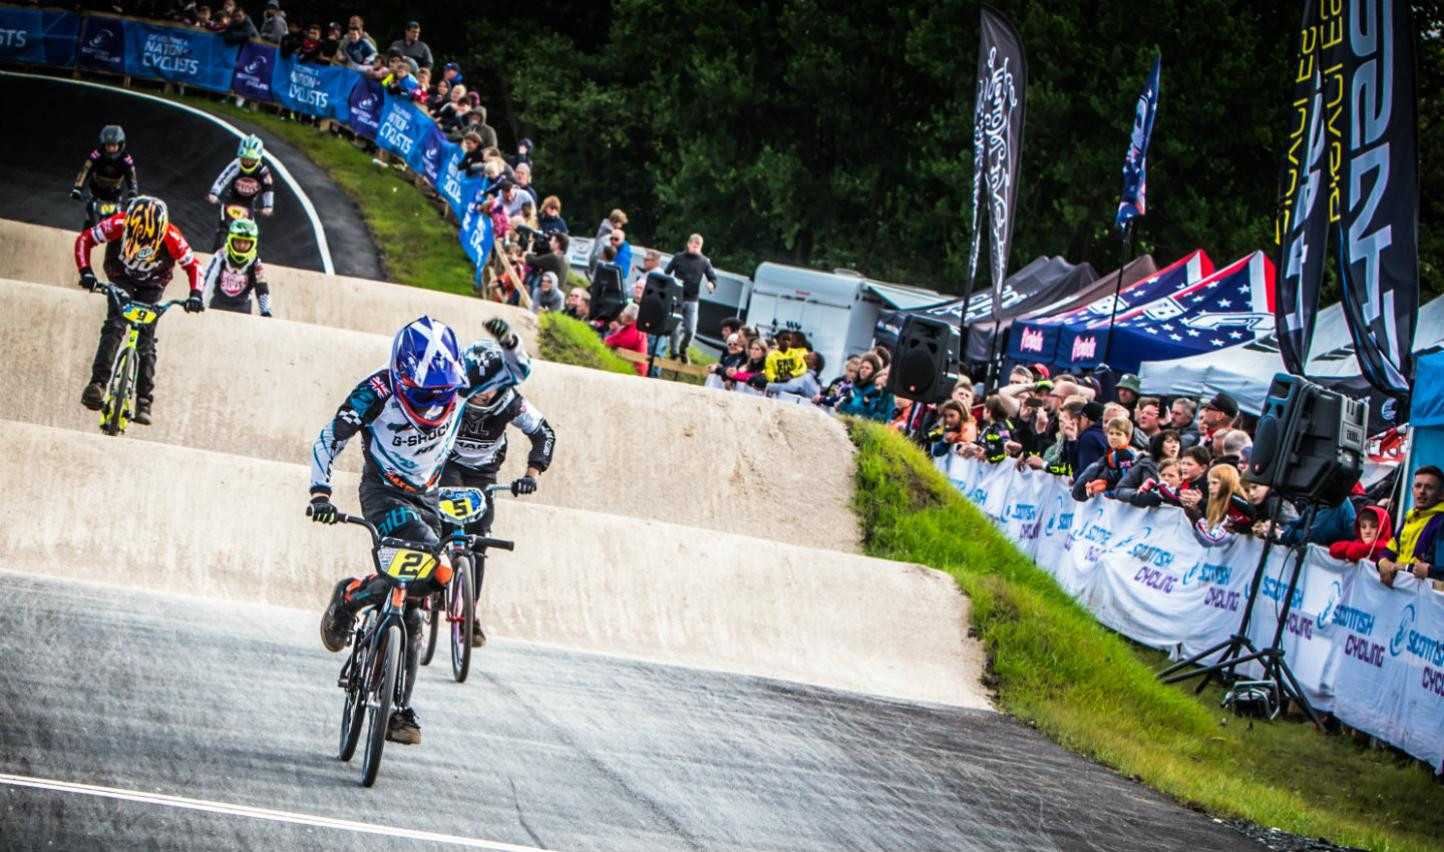 Riders hoping to take part in the European BMX Championships in Glasgow have praised the track set to be used ©Paul Makepeace